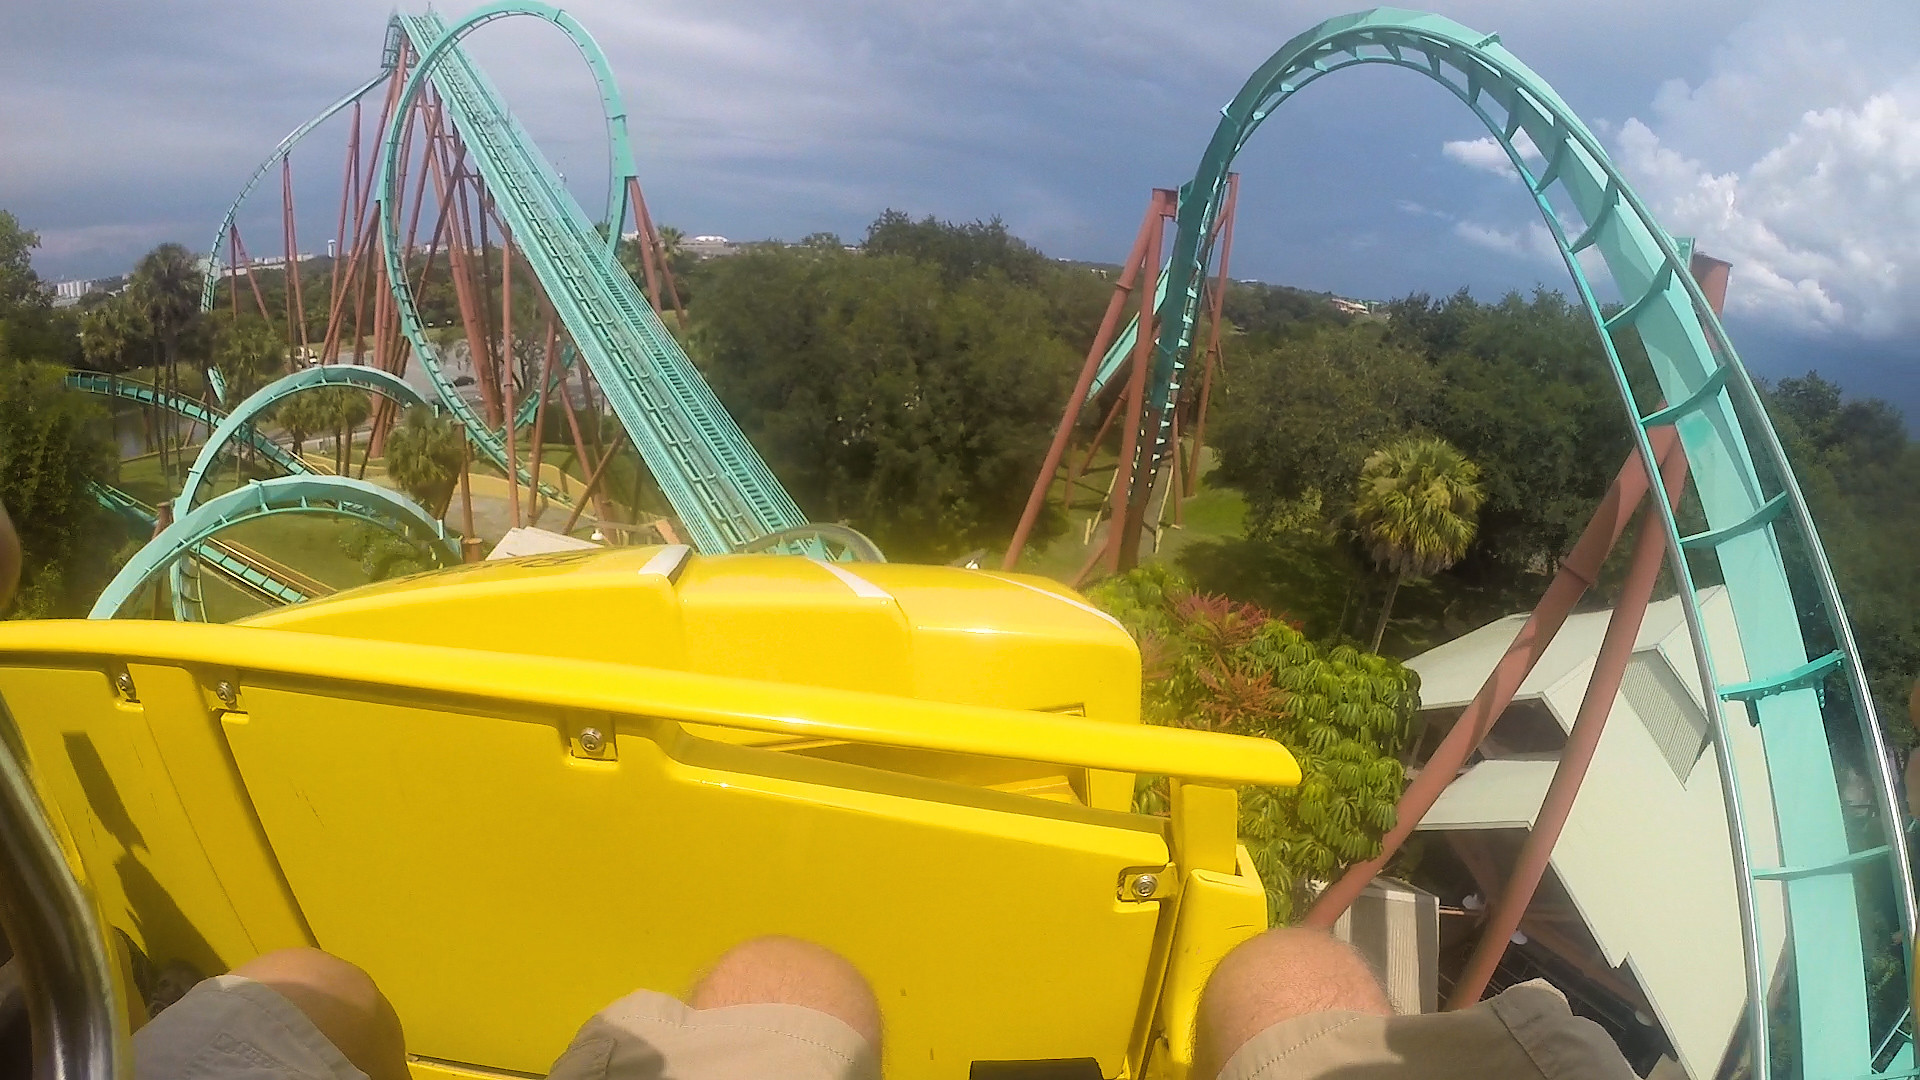 First Person View Kumba Roller Coaster At Busch Gardens Orlando Sentinel